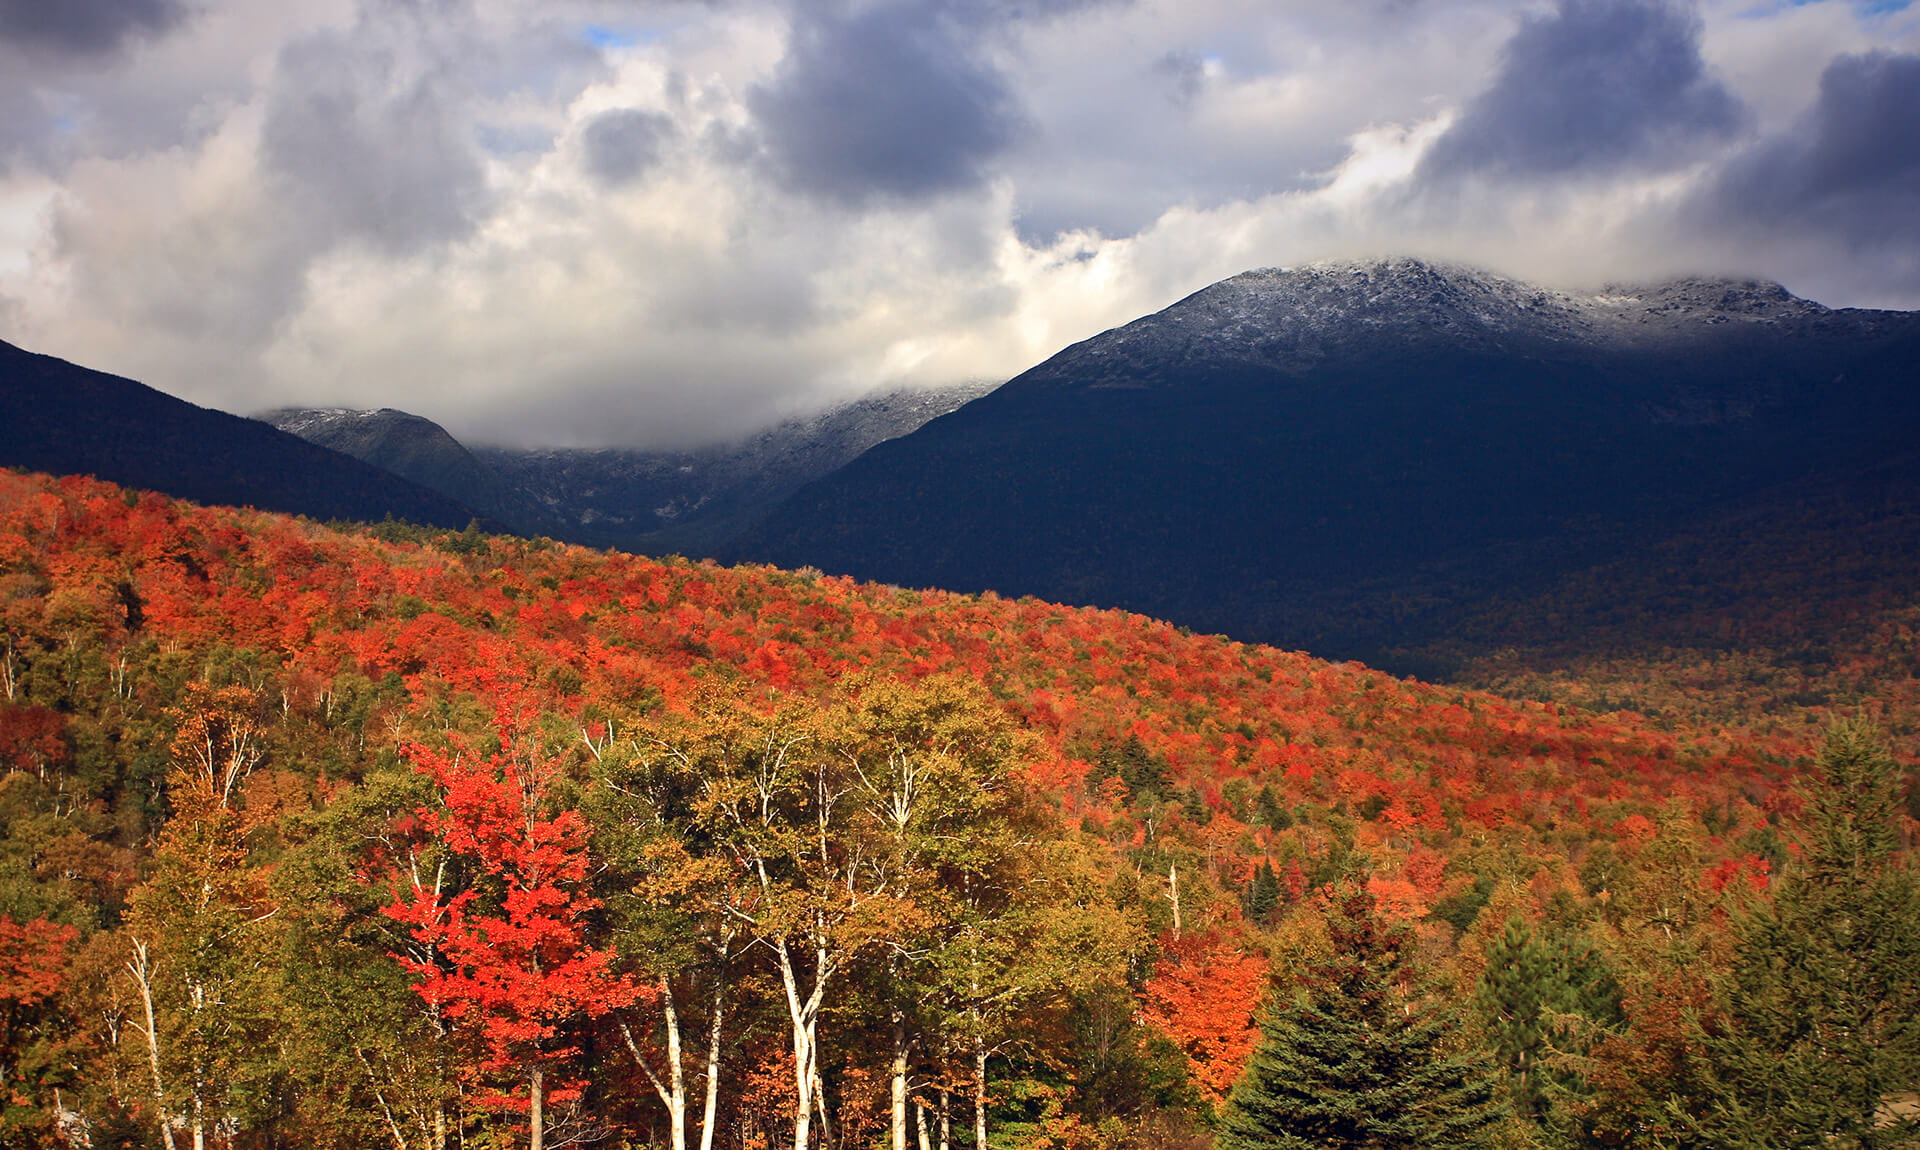 Autumn Foilage in White Mountains